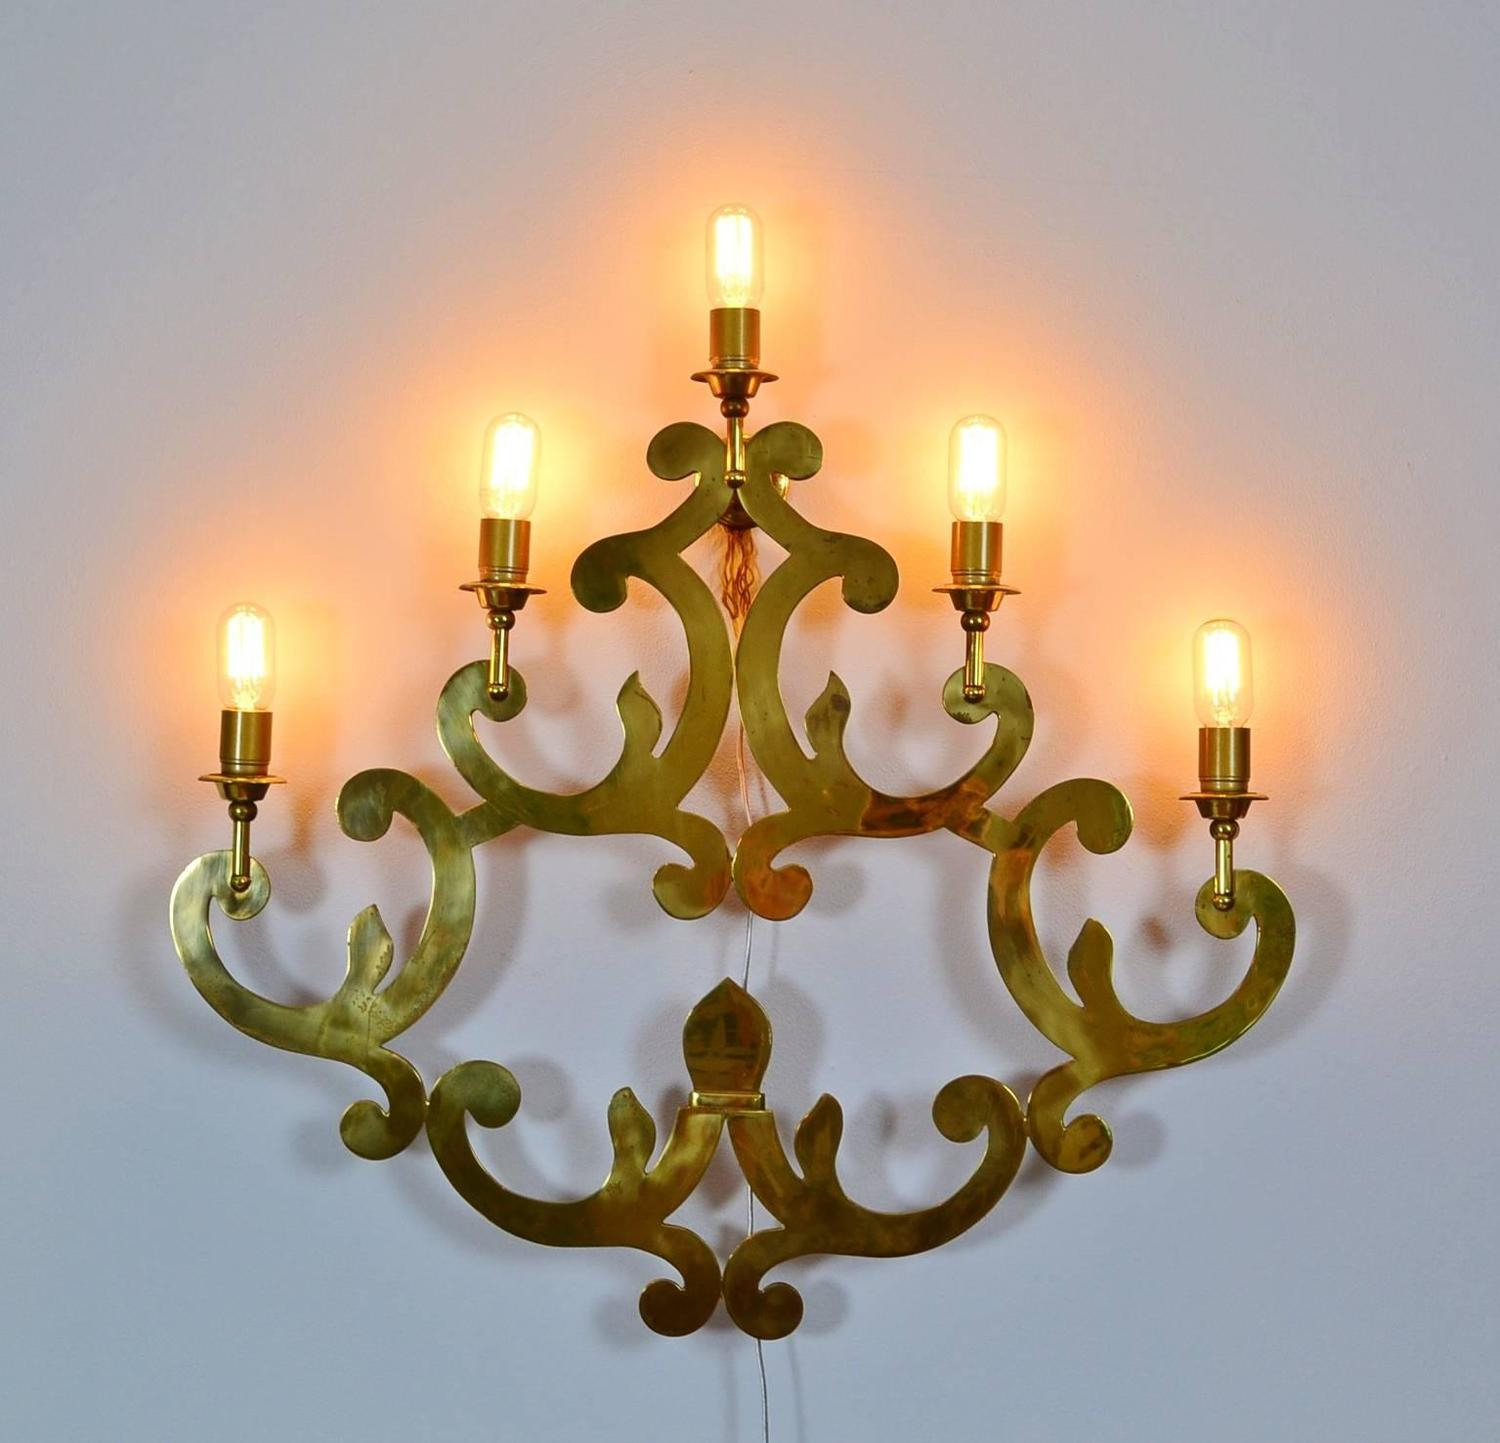 Italian Made Wall Sconces : Hugh Decorative Barock Brass Wall Sconce, Made in Italy, 1960s For Sale at 1stdibs